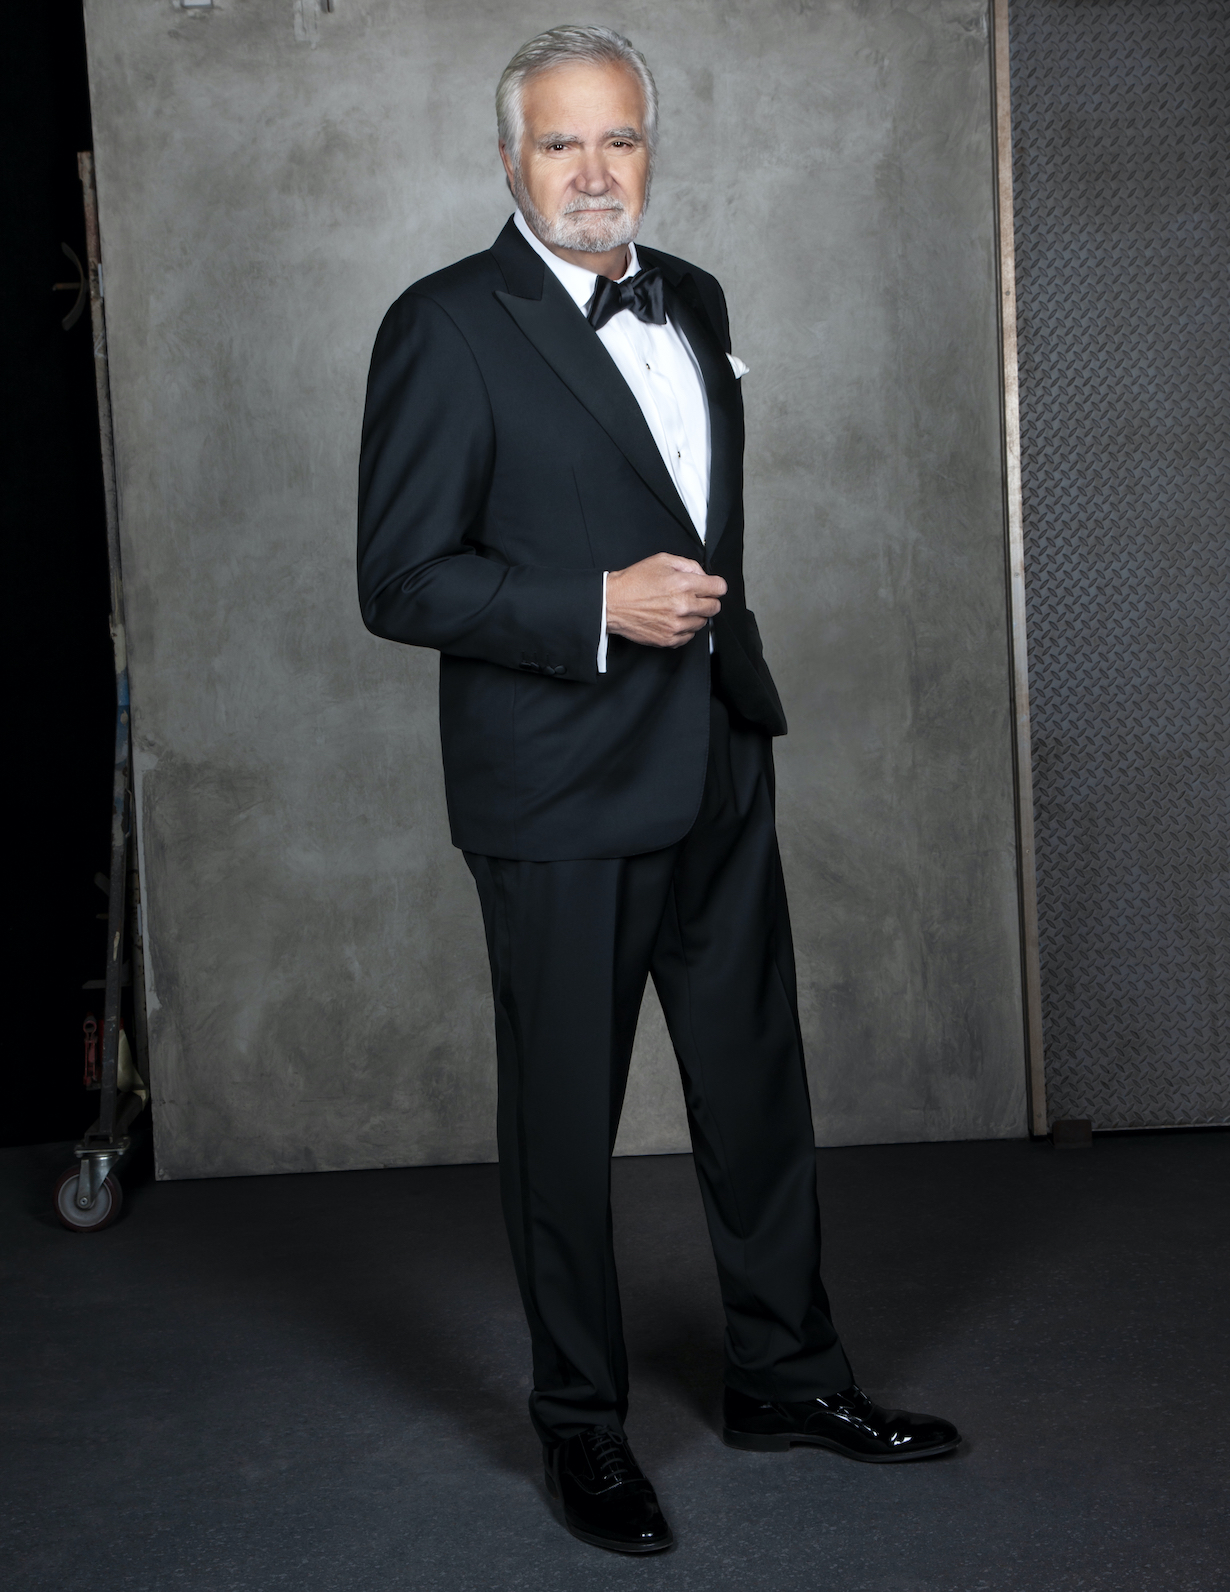 John McCook of the CBS series THE BOLD AND THE BEAUTIFUL, Weekdays (1:30-2:00 PM, ET; 12:30-1:00 PM, PT) on the CBS Television Network. Photo: Gilles Toucas/CBS 2020 CBS Broadcasting, Inc. All Rights Reserved.